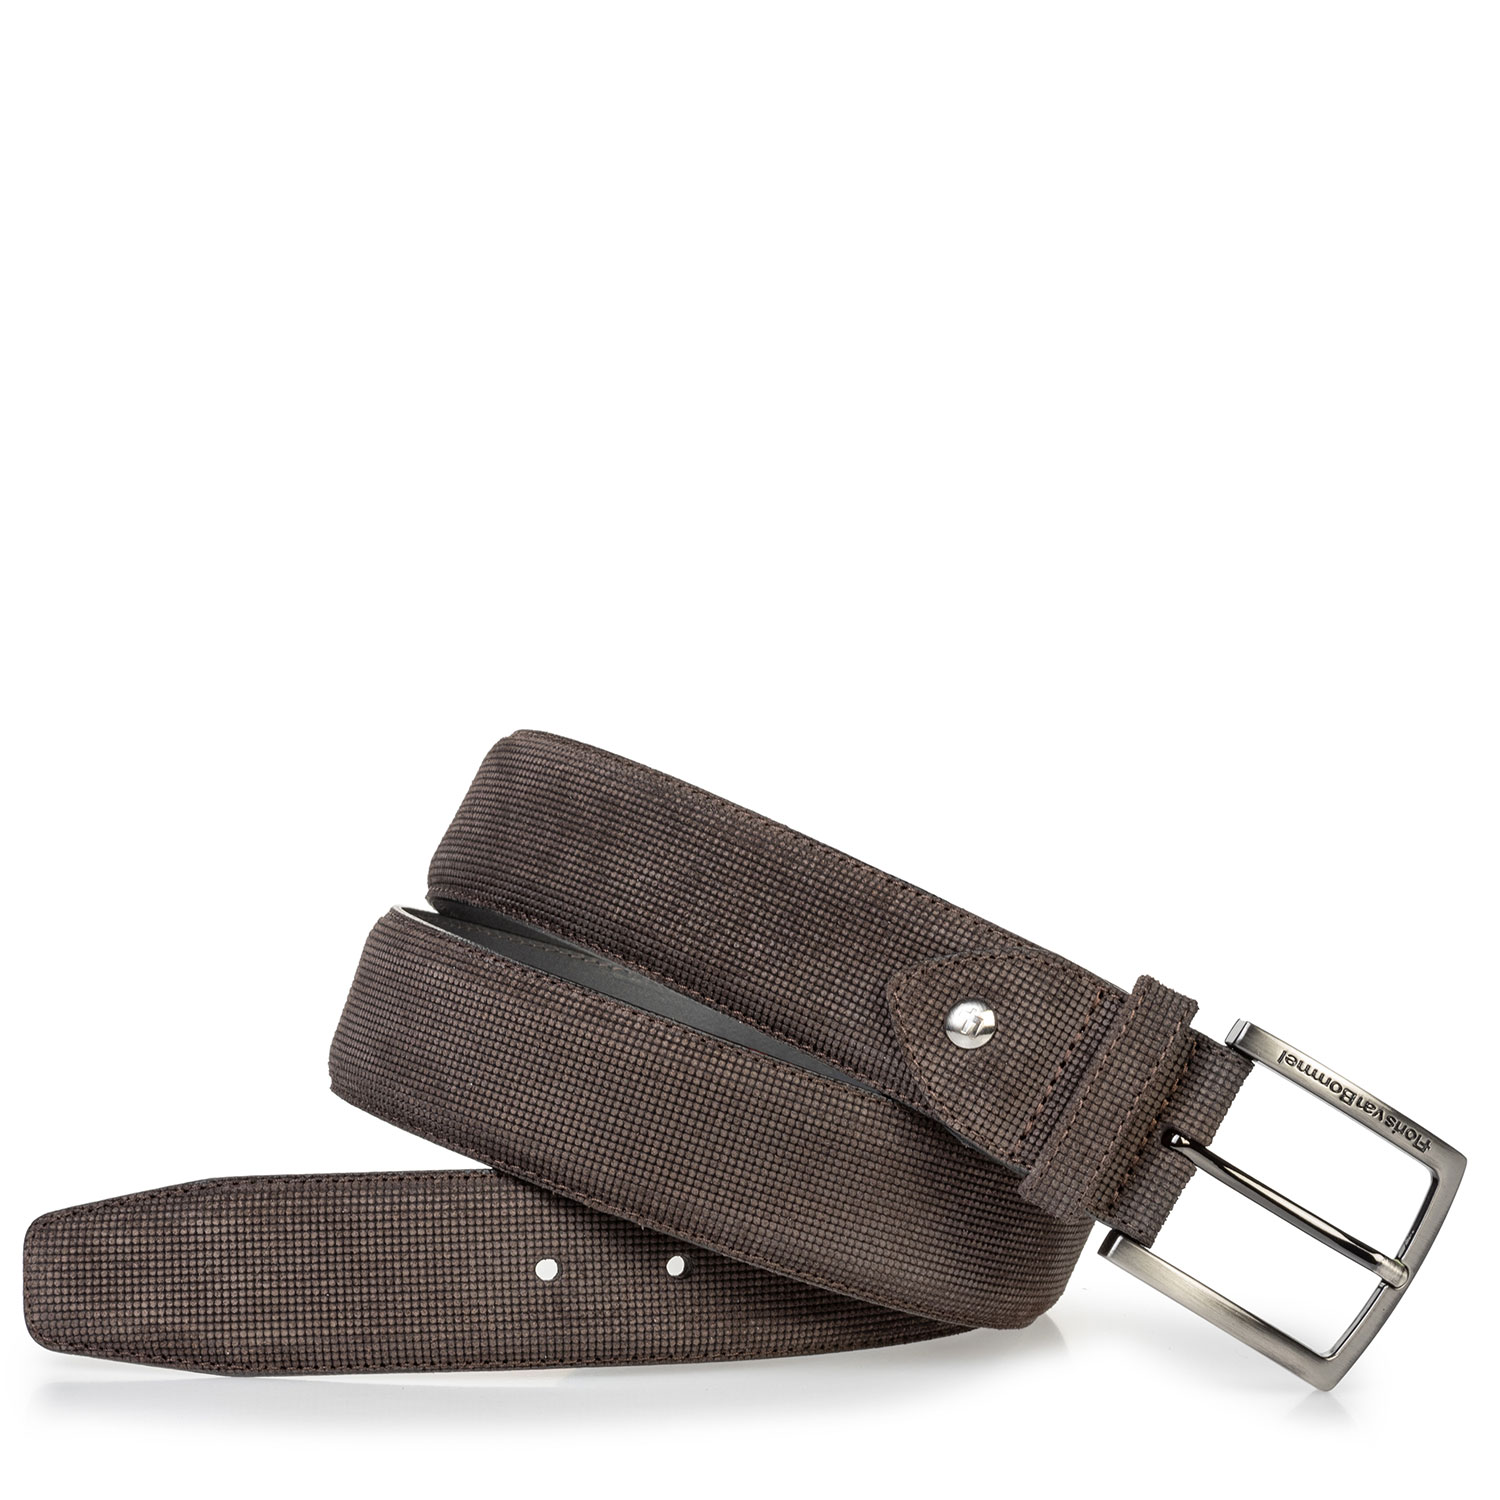 75204/00 - Suede leather belt brown with print